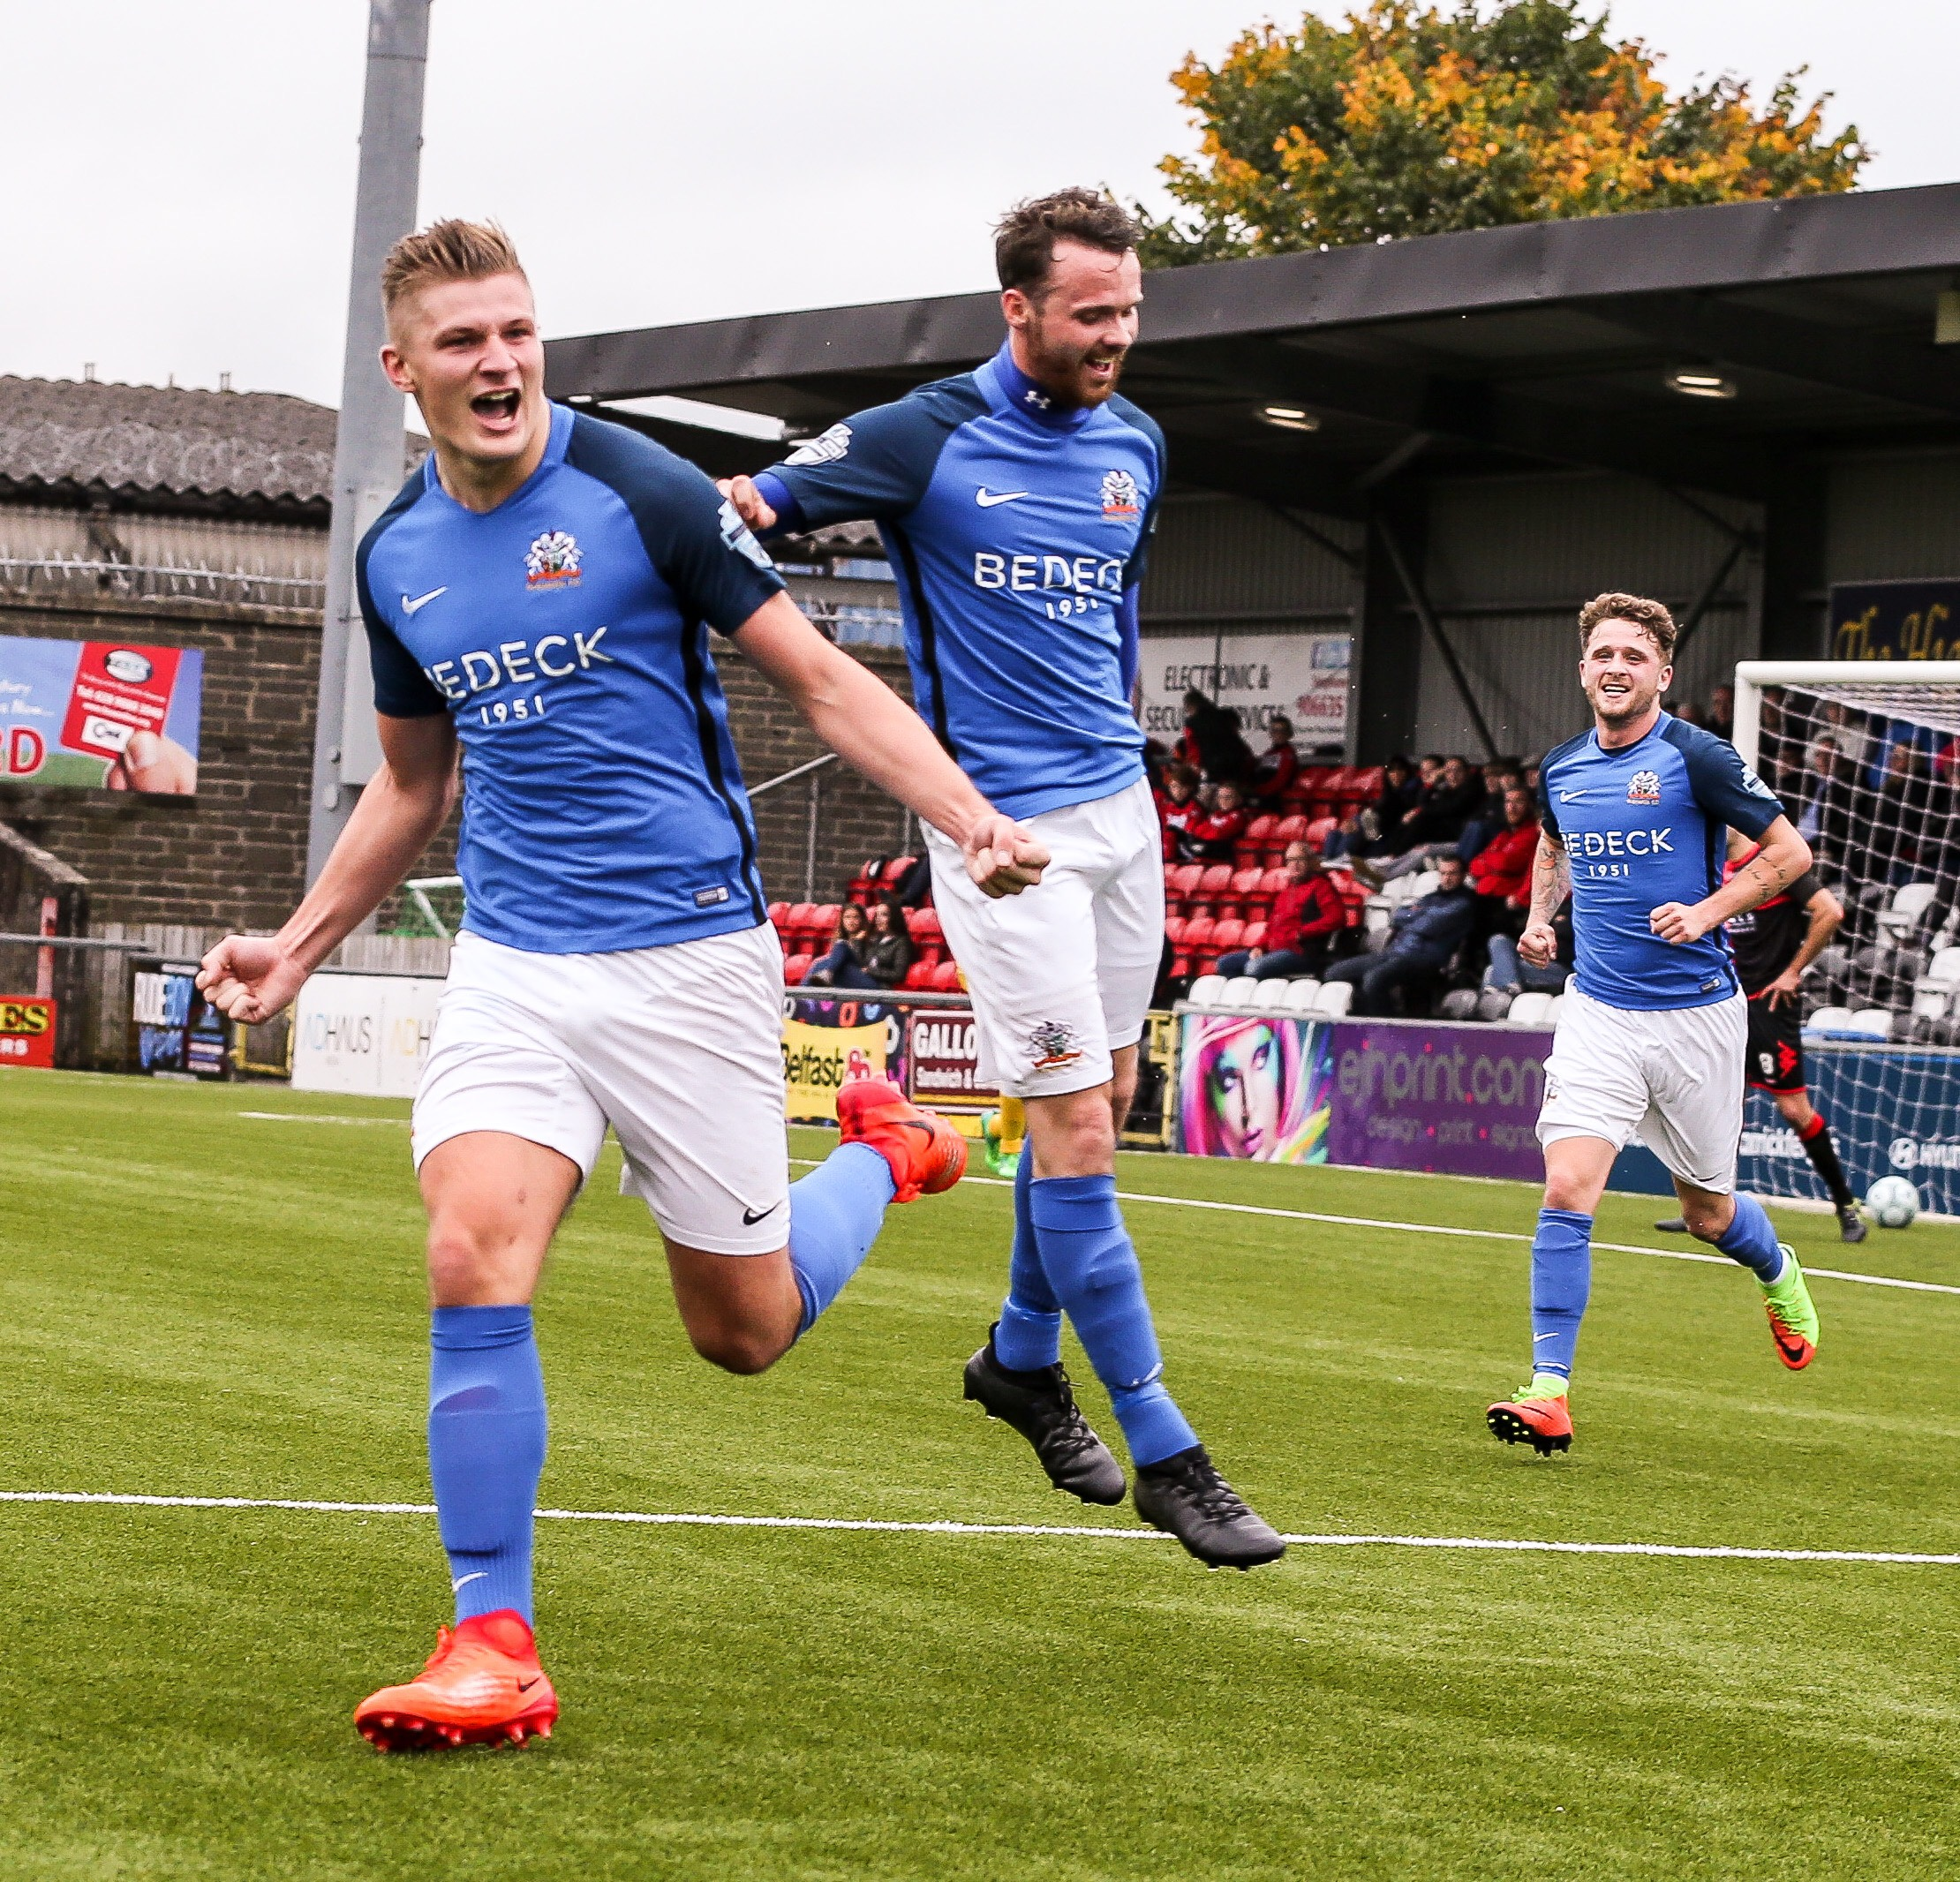 FT: Crusaders 2-3 Glenavon